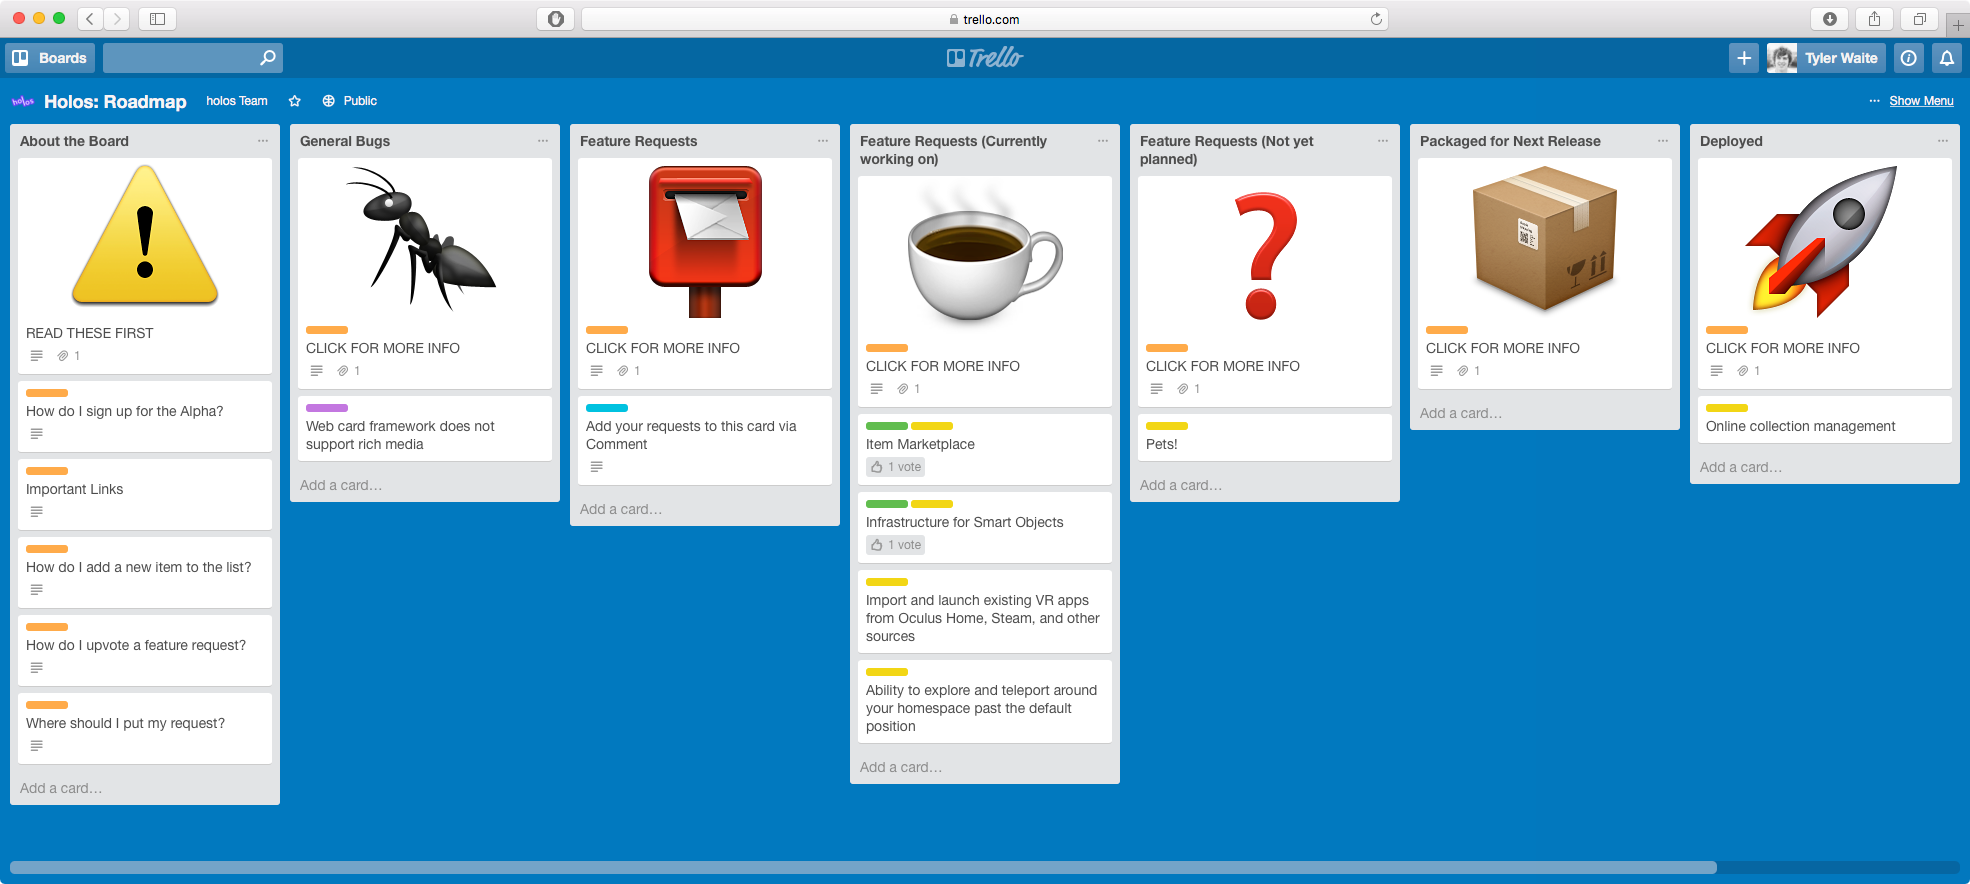 Our Trello board, all neat and tidy! Click on it to add your feature request.